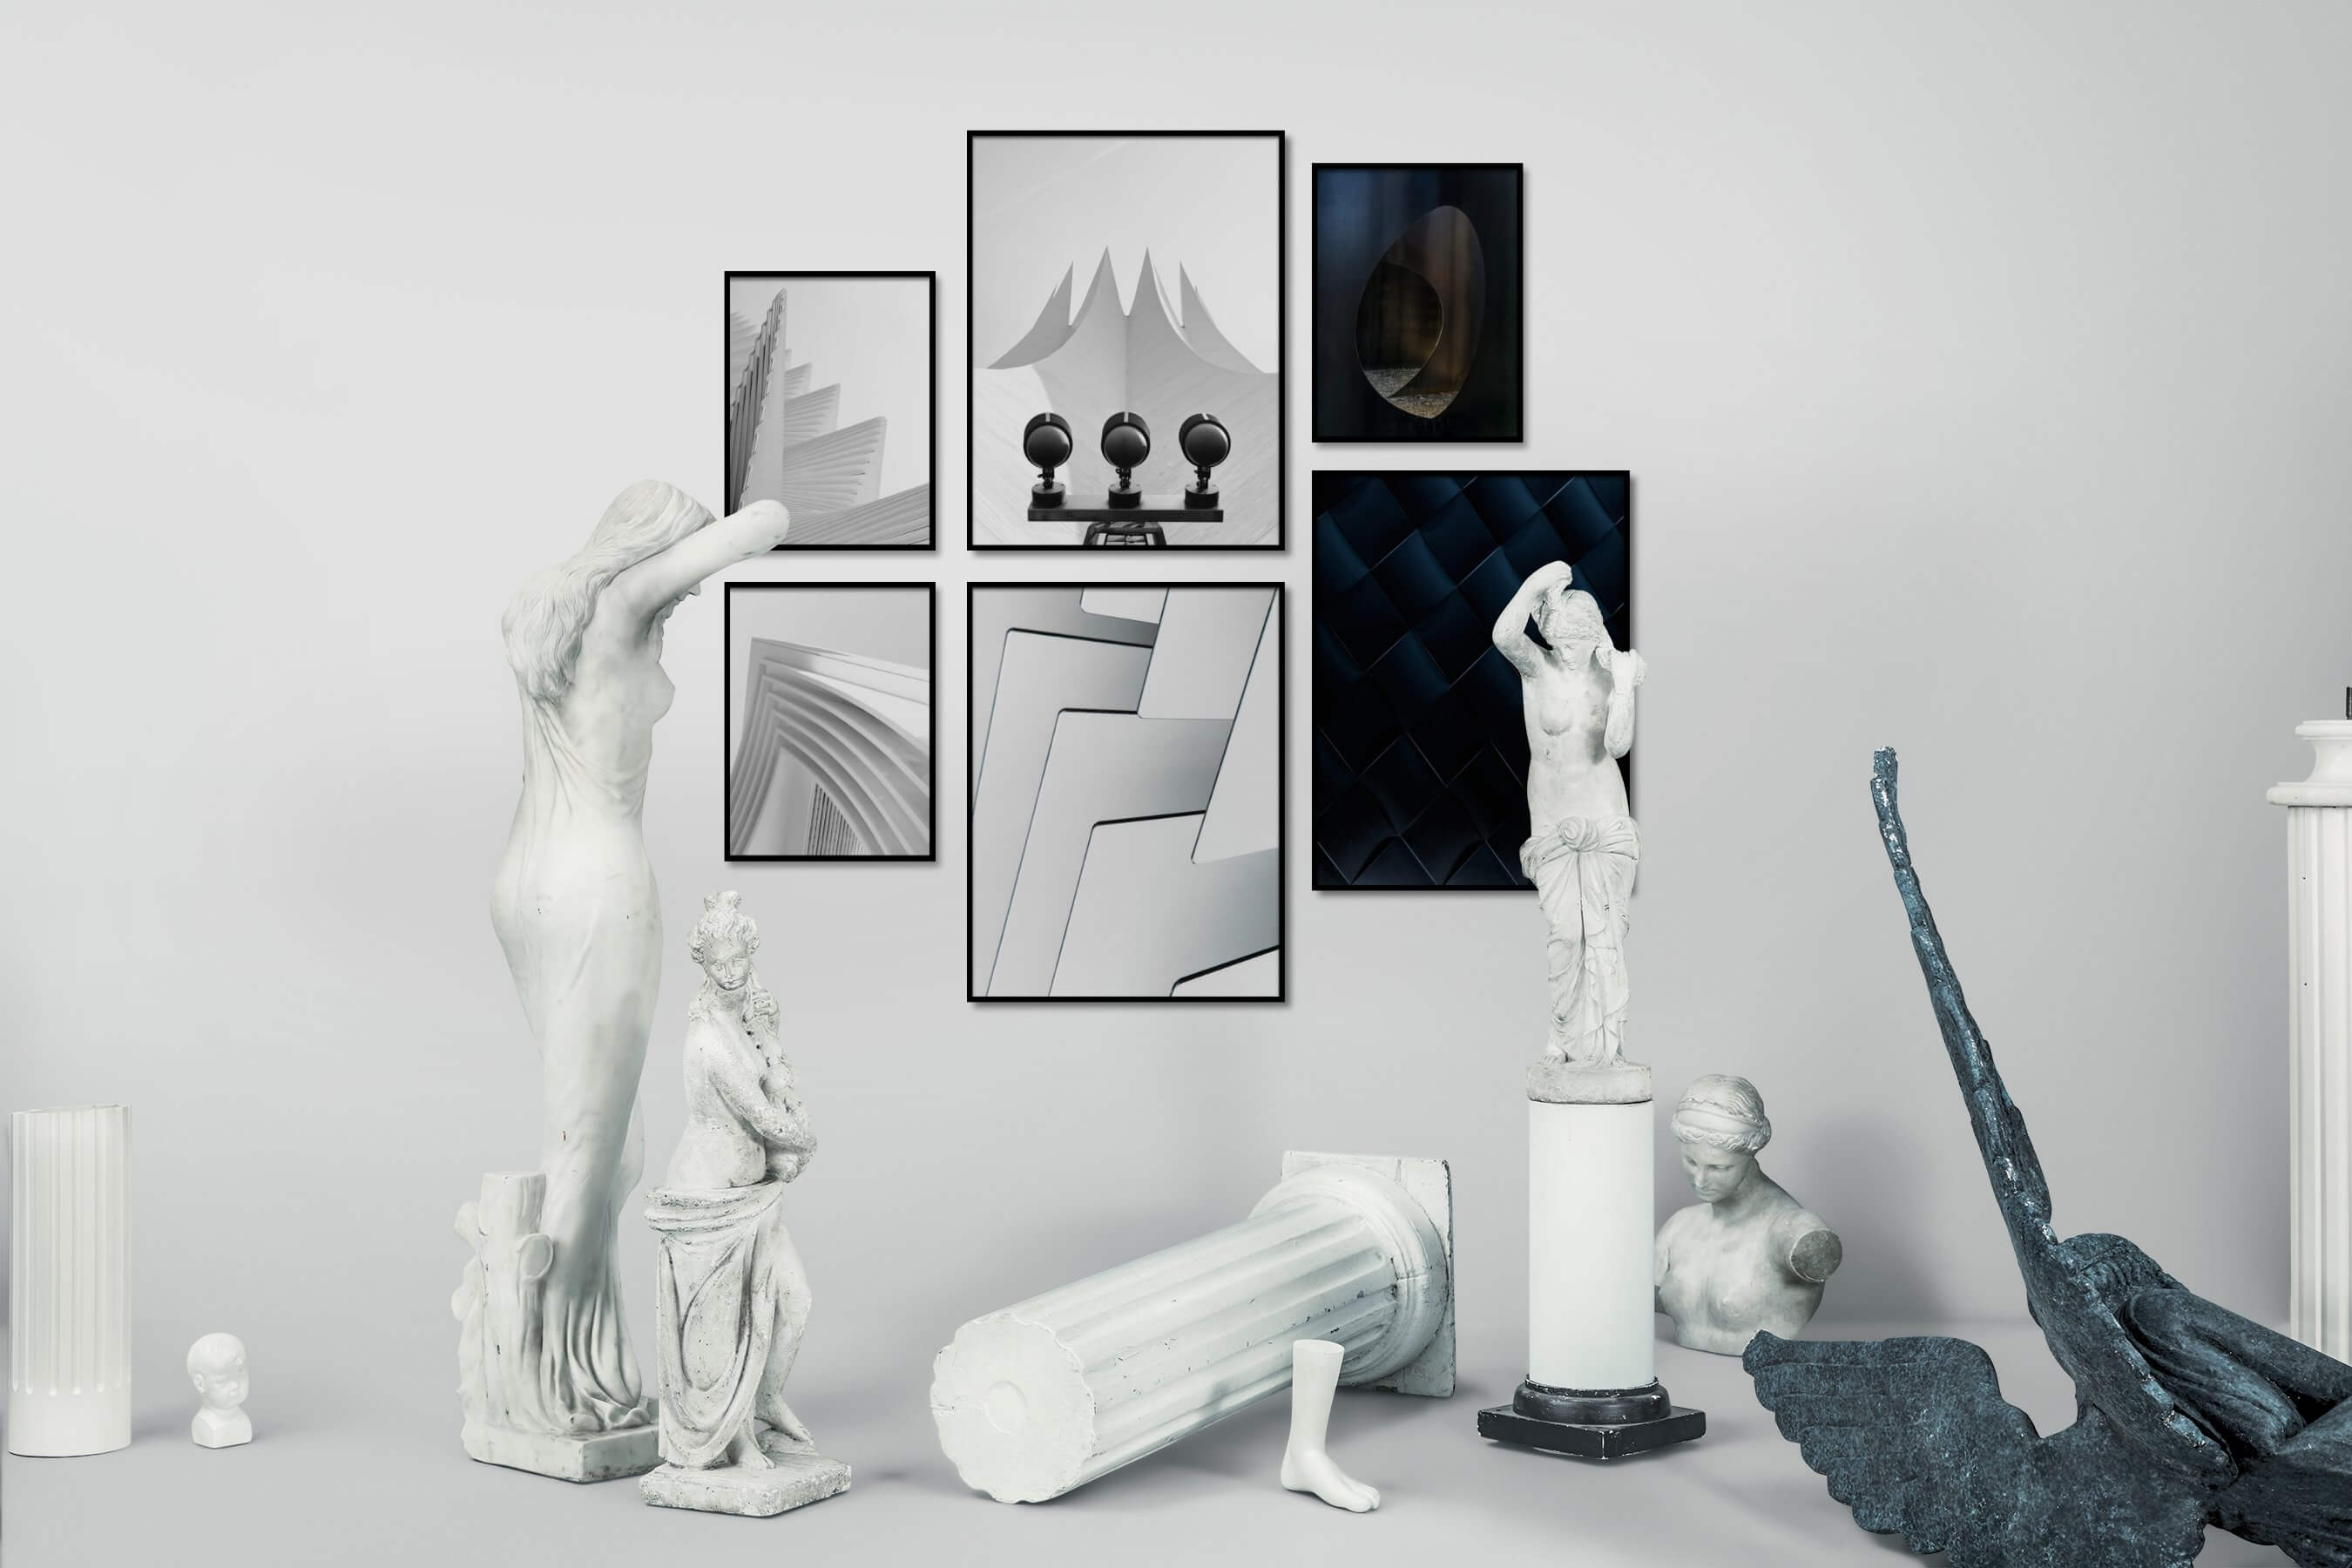 Gallery wall idea with six framed pictures arranged on a wall depicting Black & White, For the Minimalist, Bright Tones, For the Moderate, and Dark Tones